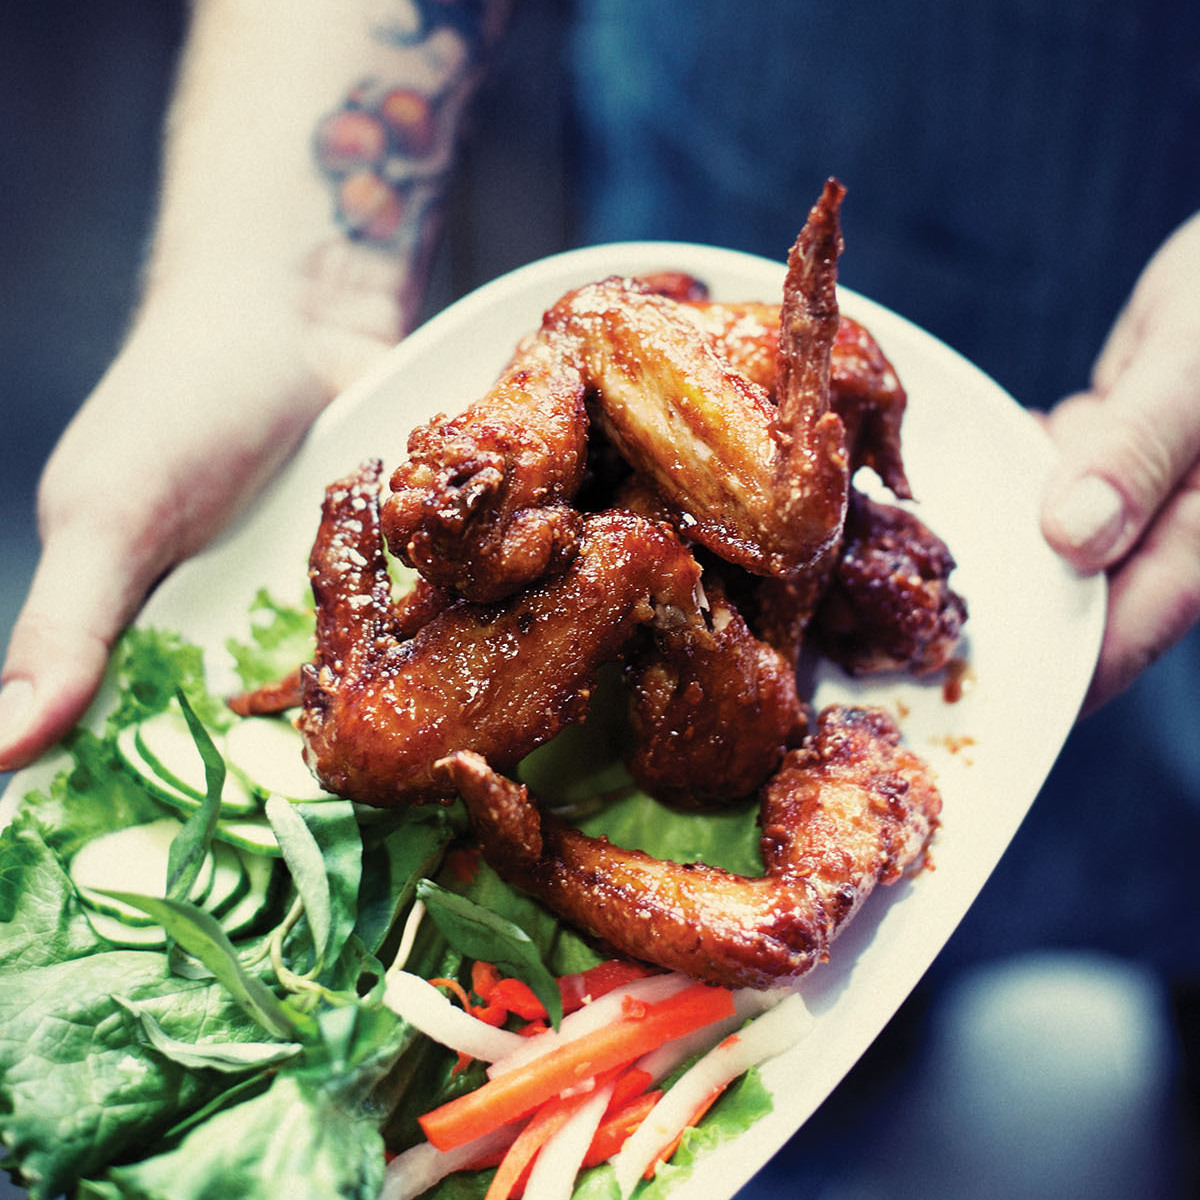 Pok Pok's most popular and addictive dish is Ike's Vietnamese fish sauce wings, according to Karen Brooks, a food critic at Portland Monthly.